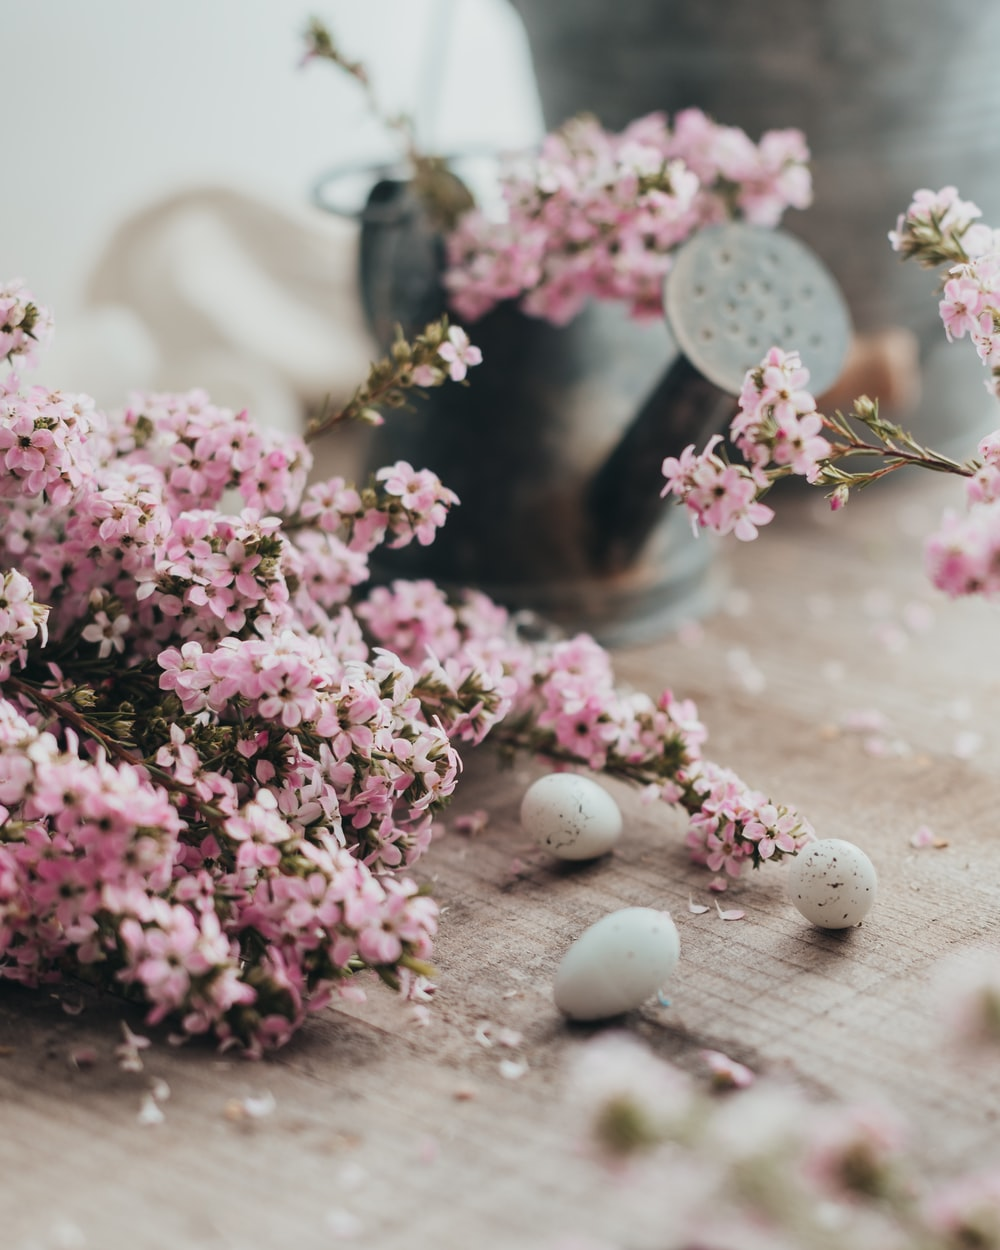 pink and white flowers on clear glass jar